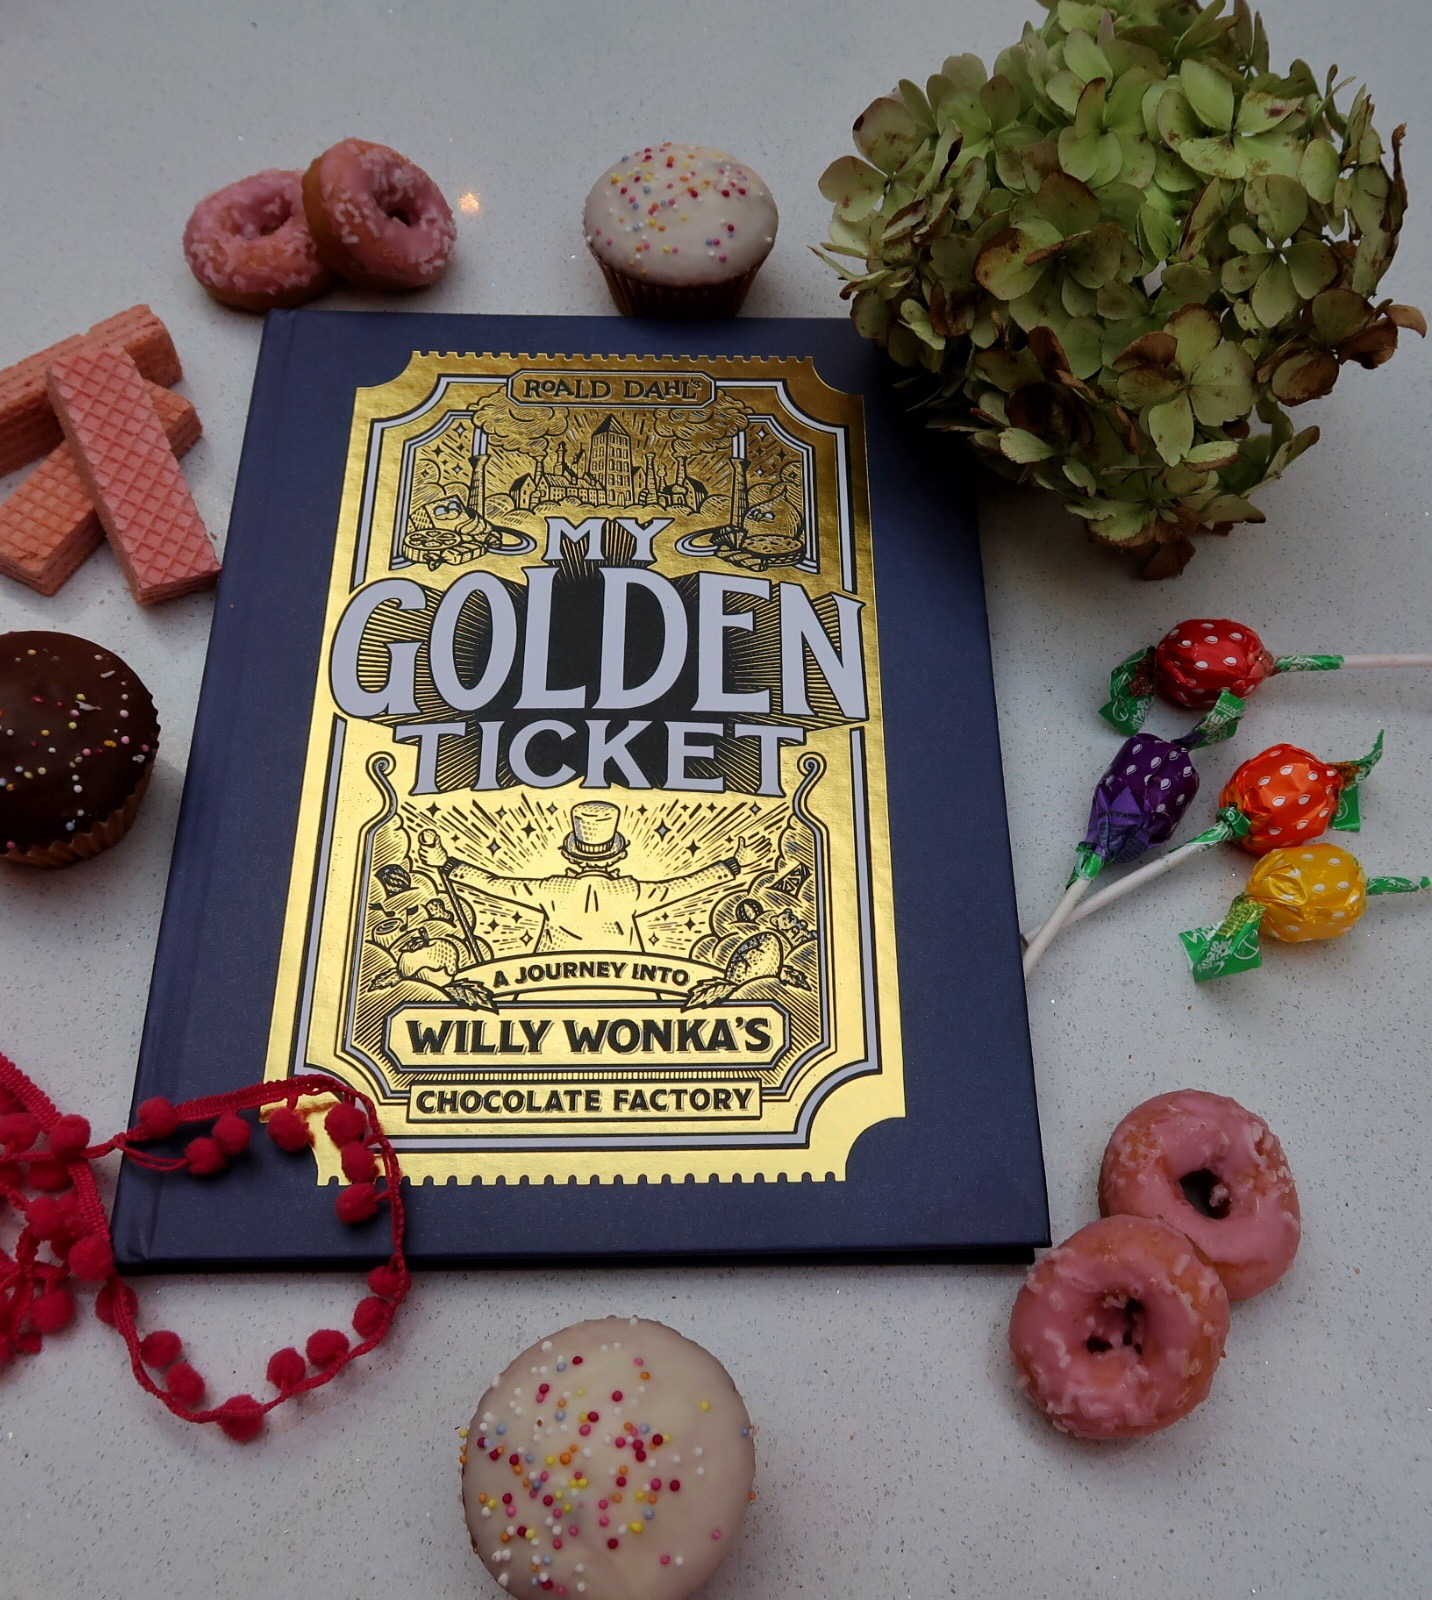 The beautiful blue and gold cover of the My Golden Ticket hardcover book surrounded by sweet treats!